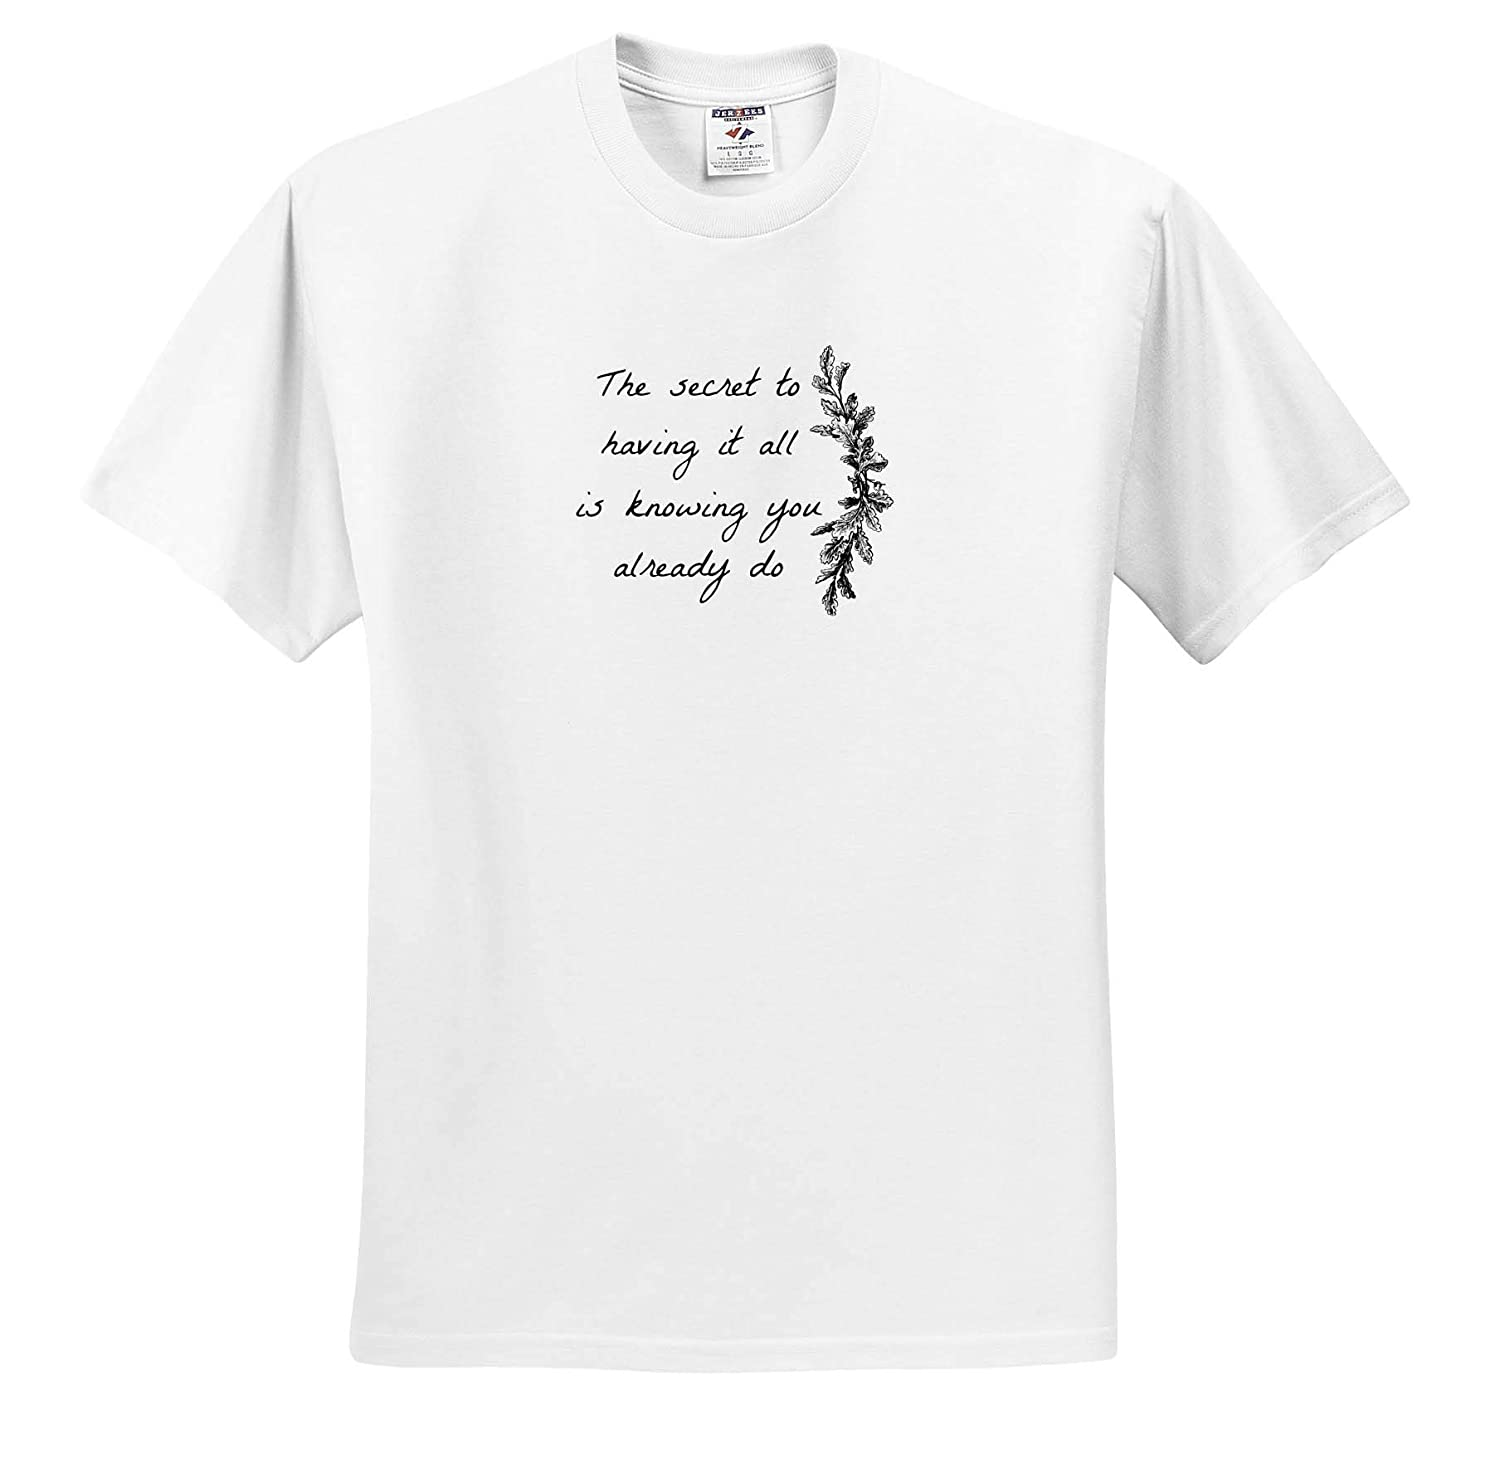 3dRose 3D Rose Nicole R Image of The Secret to Having It All is Knowing You Already Do T-Shirts Quote